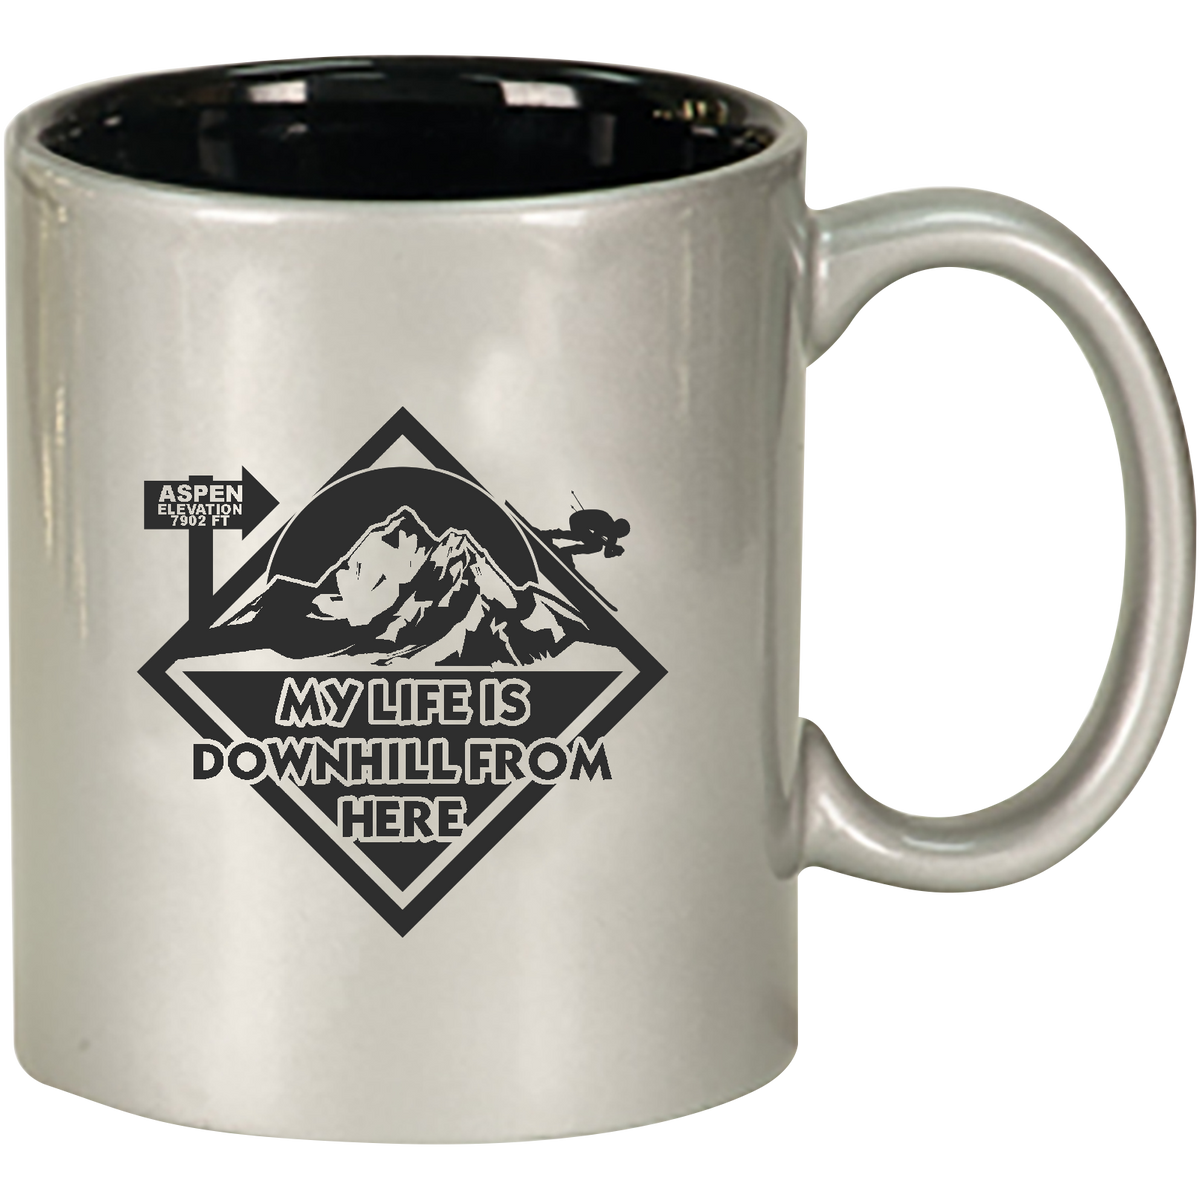 My Life is Downhill From Here - 11oz. Engraved Ceramic Mug